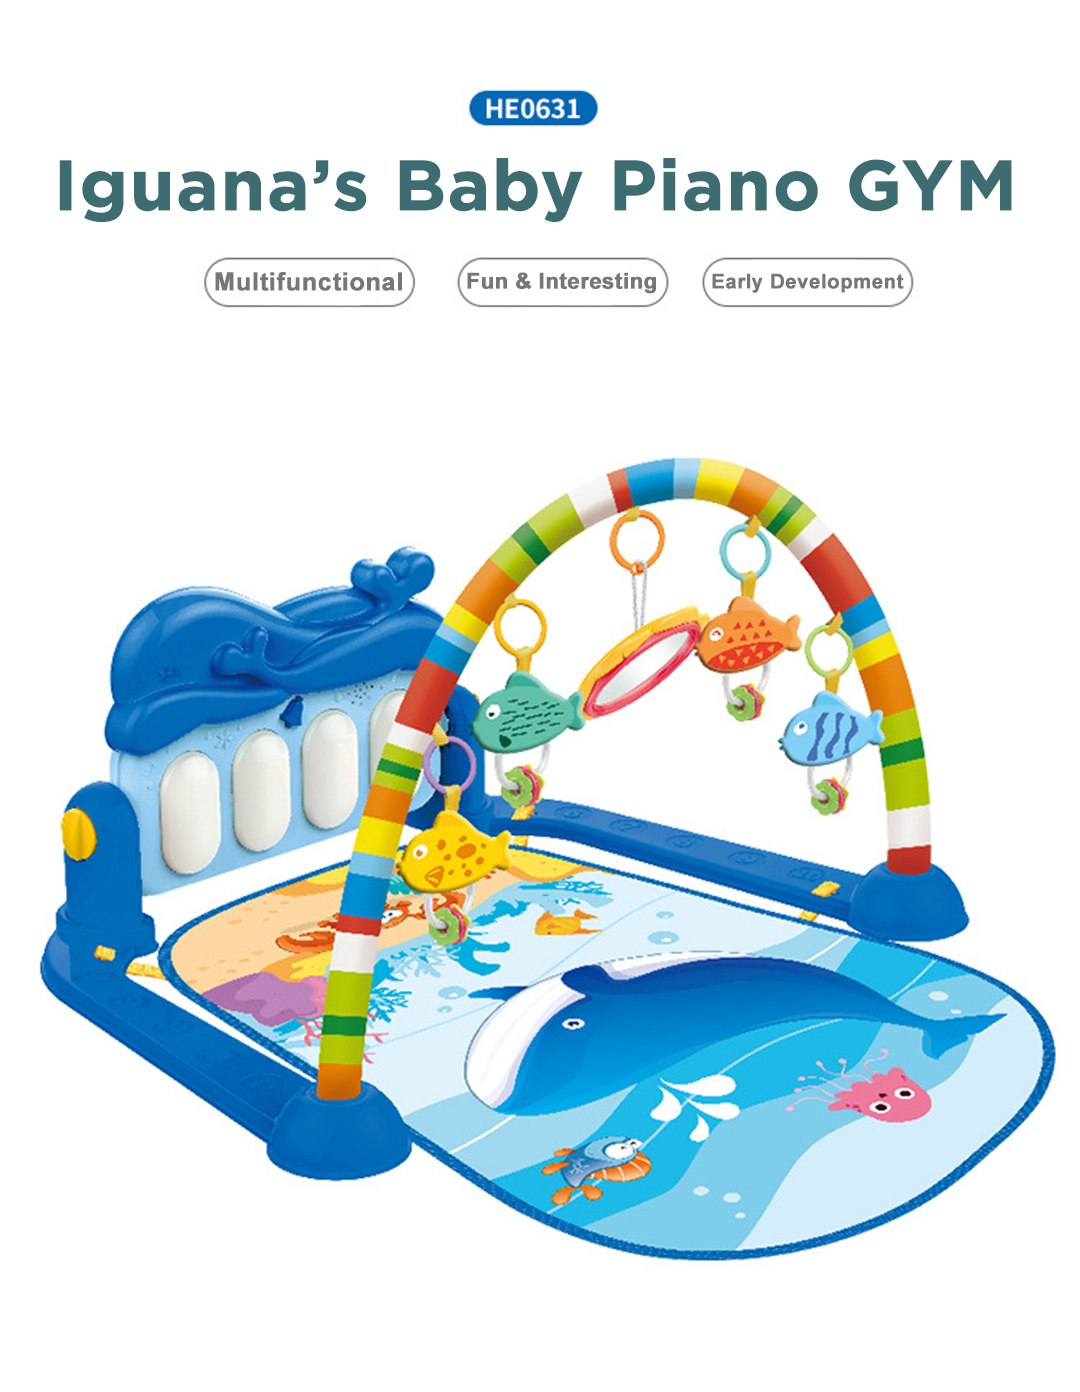 Iguana Online Musical Environmentally Friendly ABS Baby Piano Gym Mat with Lights BGM631 (Blue)